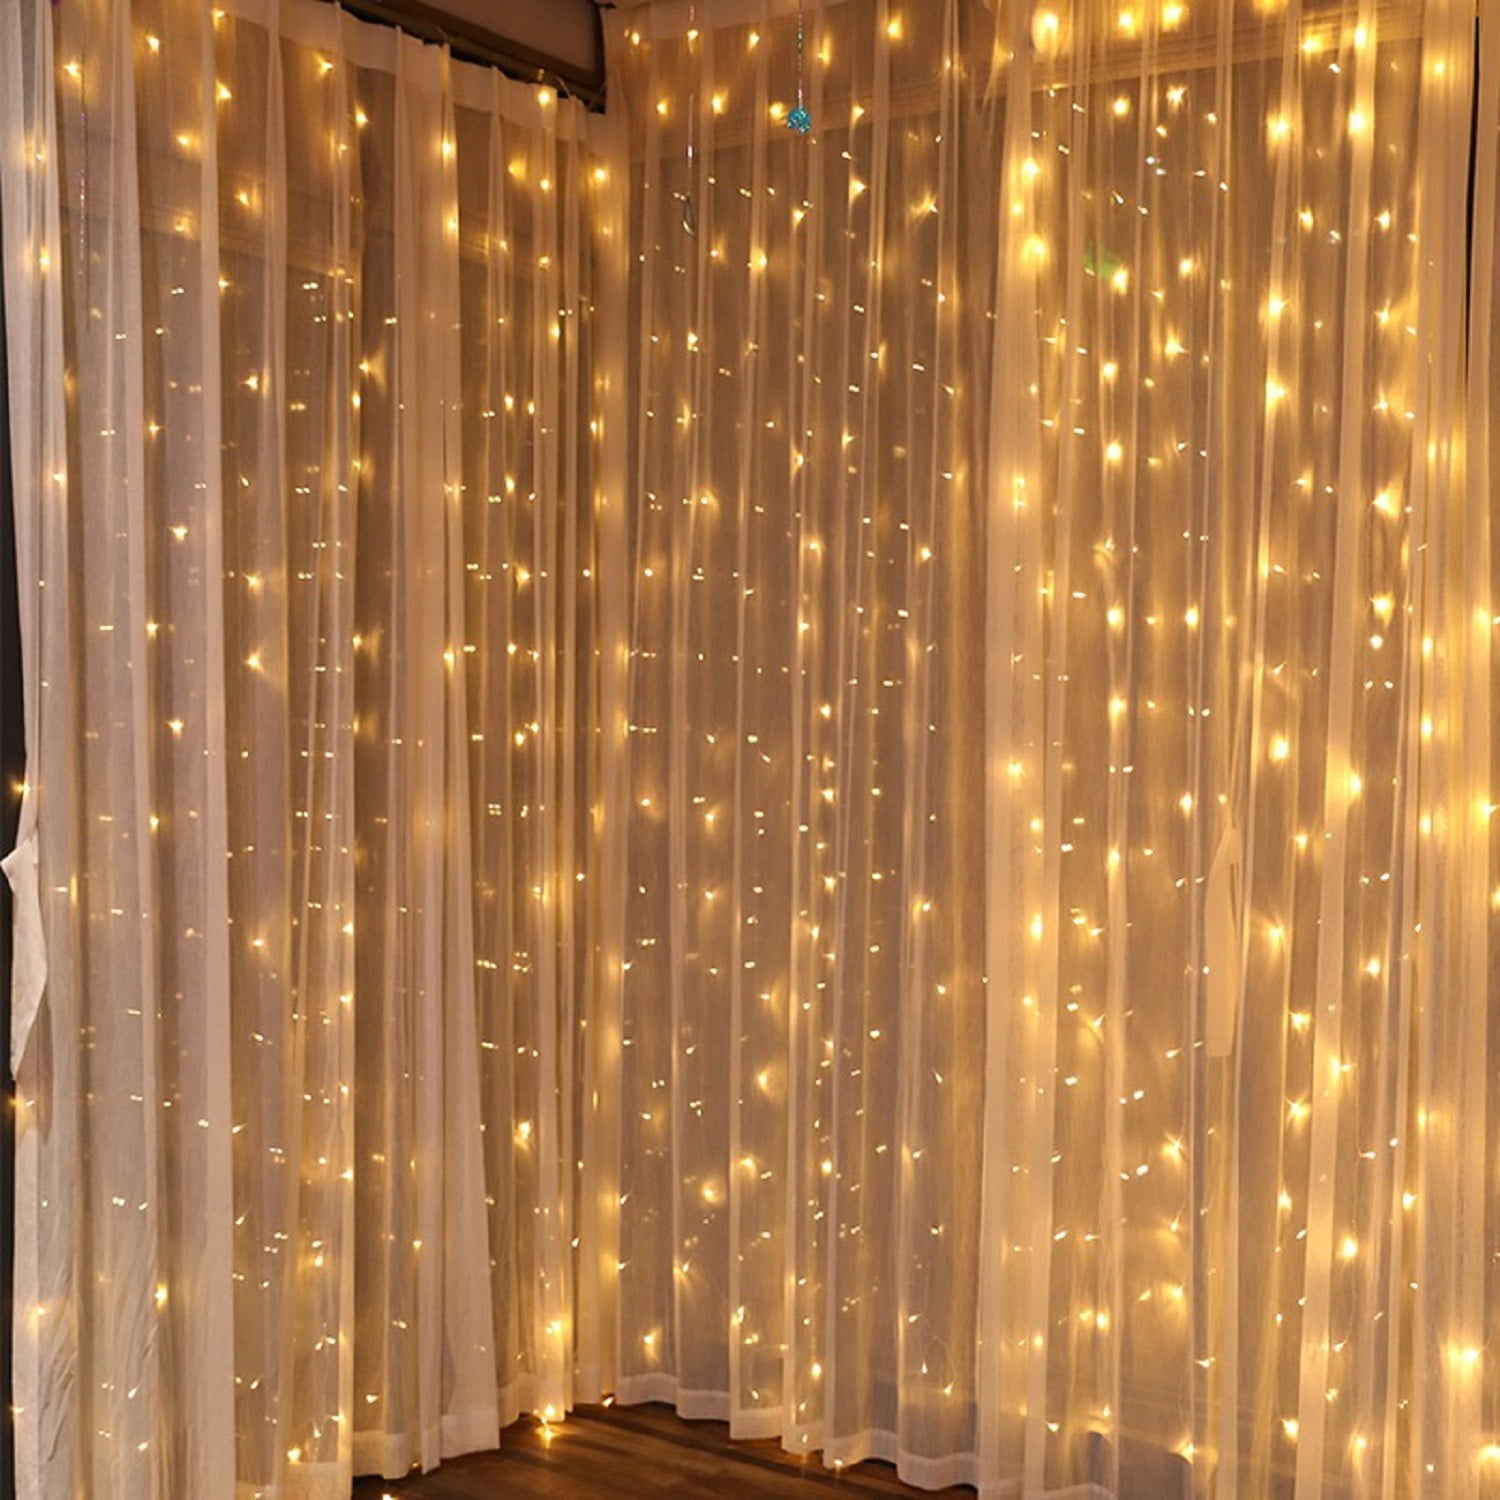 Torchstar 9 8ft X Led Curtain Lights Starry Christmas String Light Icicle Fairy Decorative Lighting For Room Garden